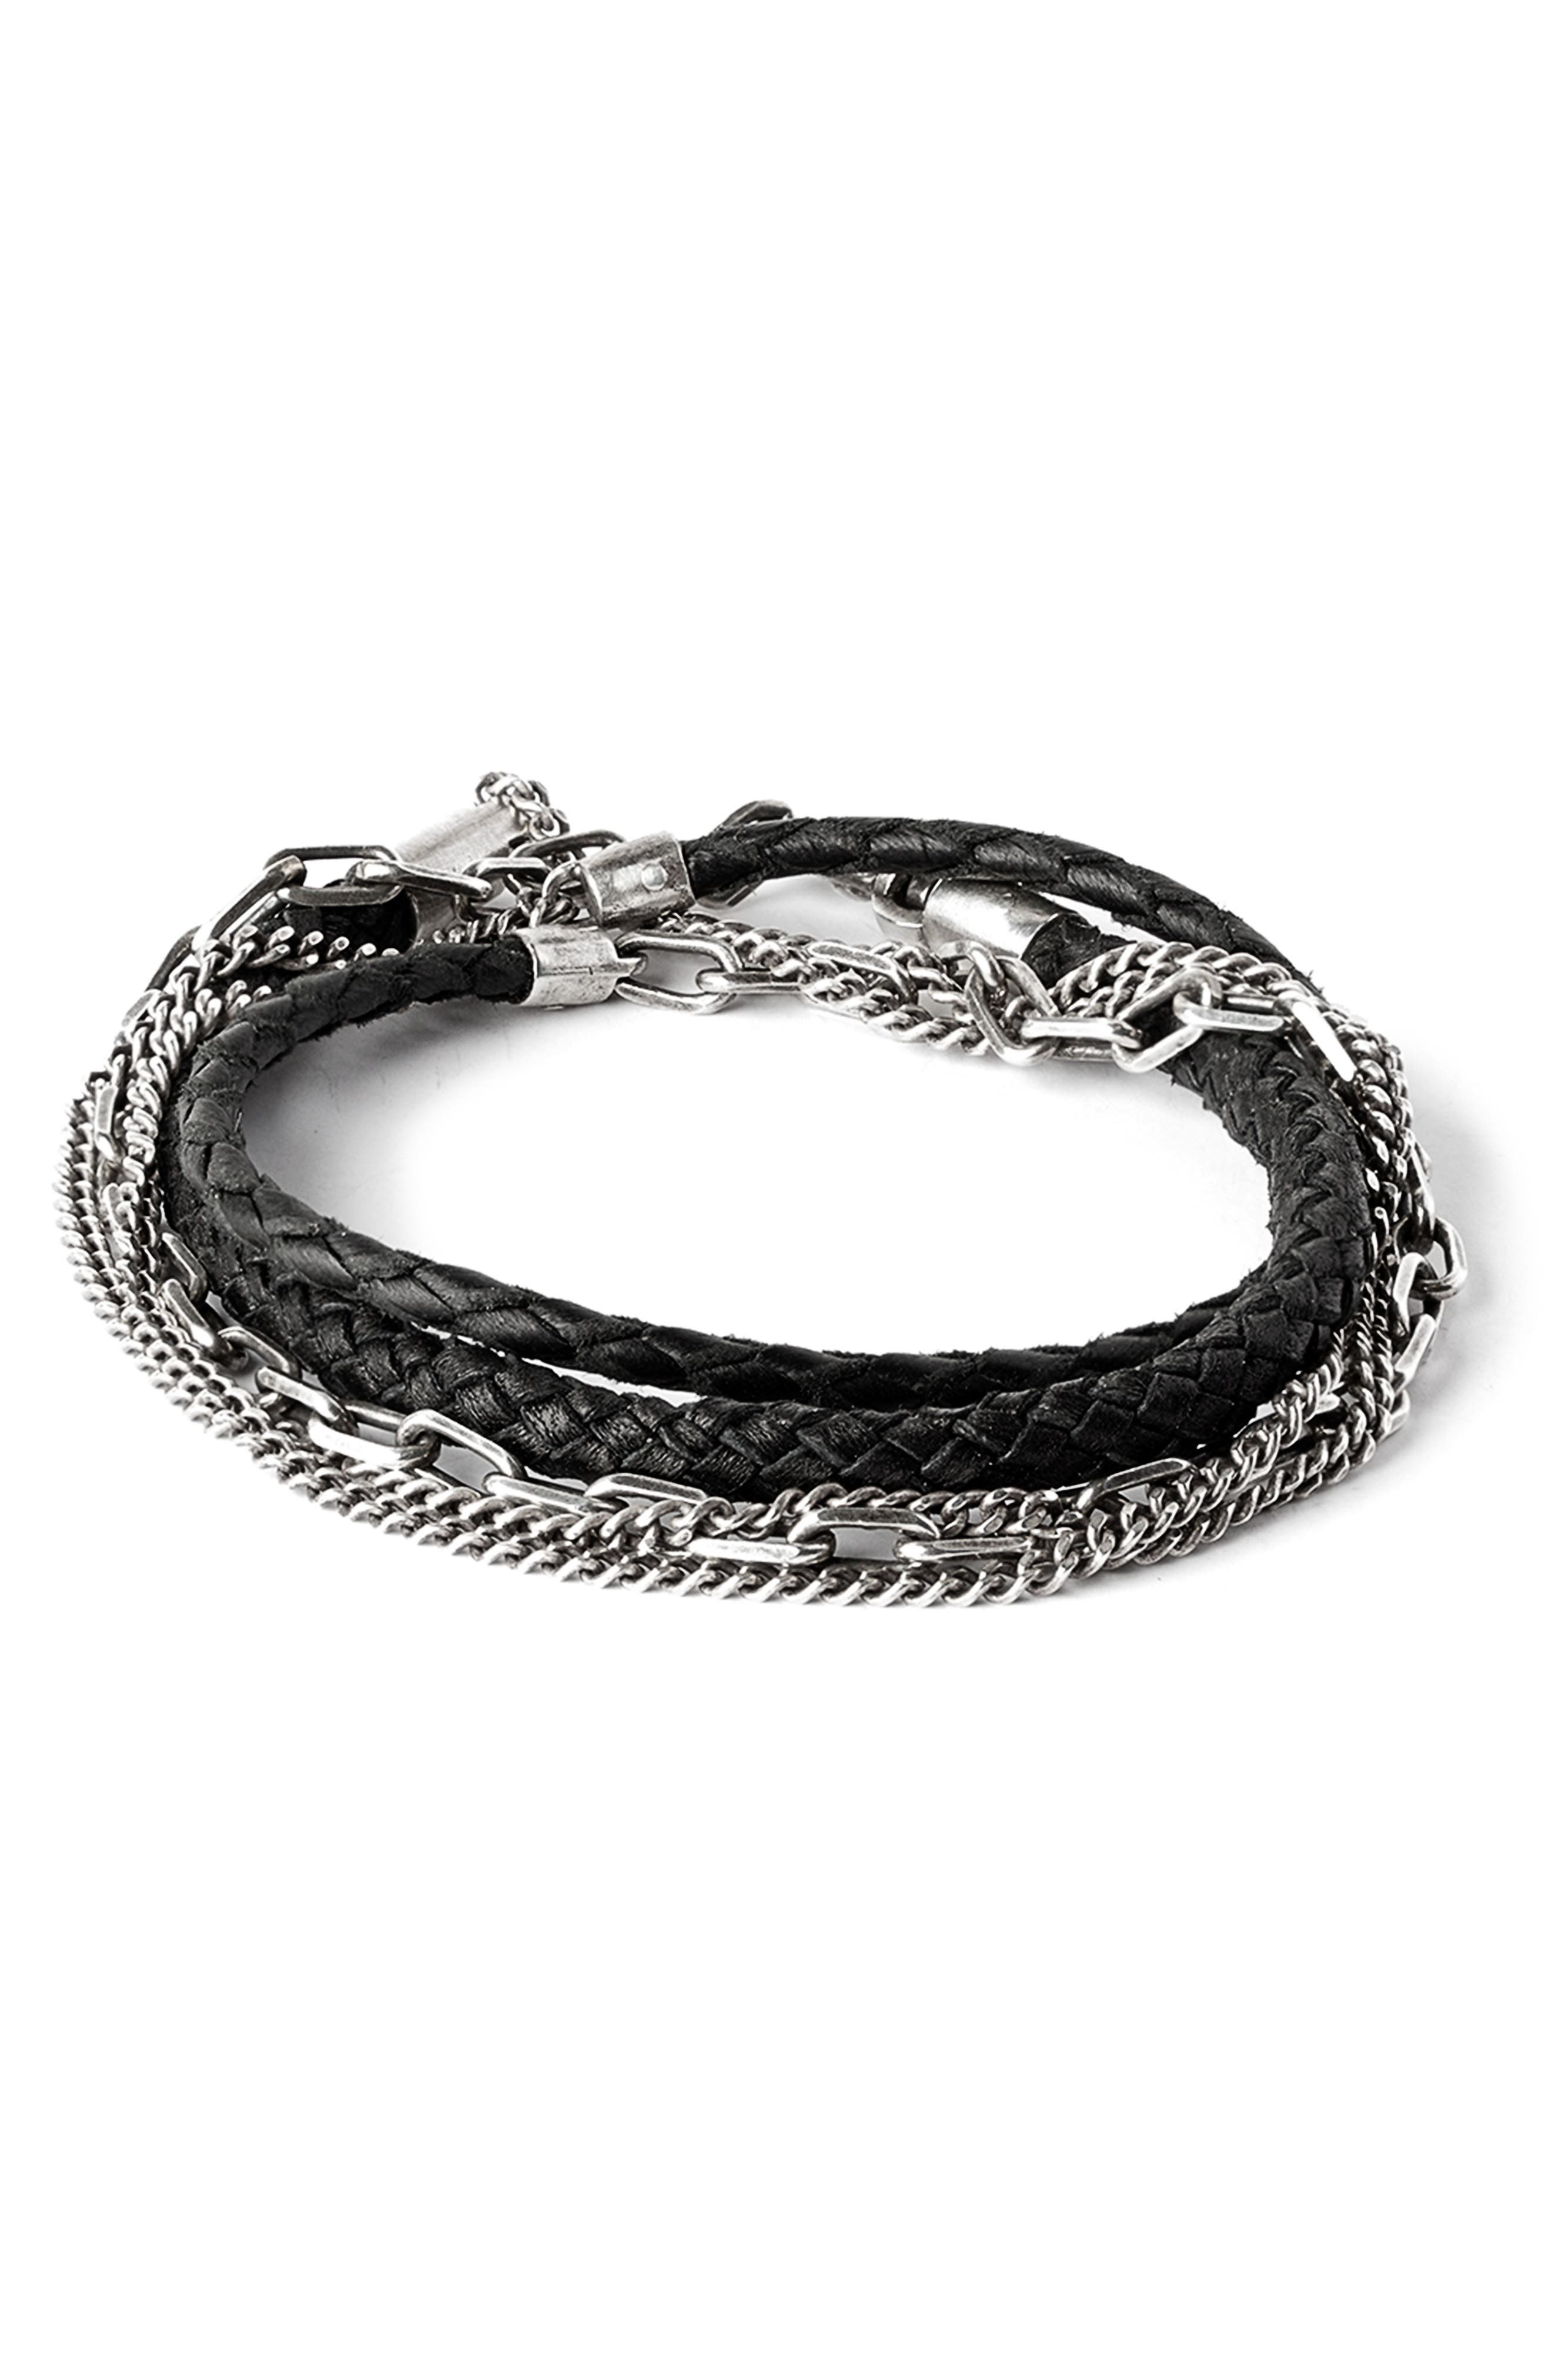 Braided Leather & Chain Multi Wrap Bracelet,                         Main,                         color, Black/Silver